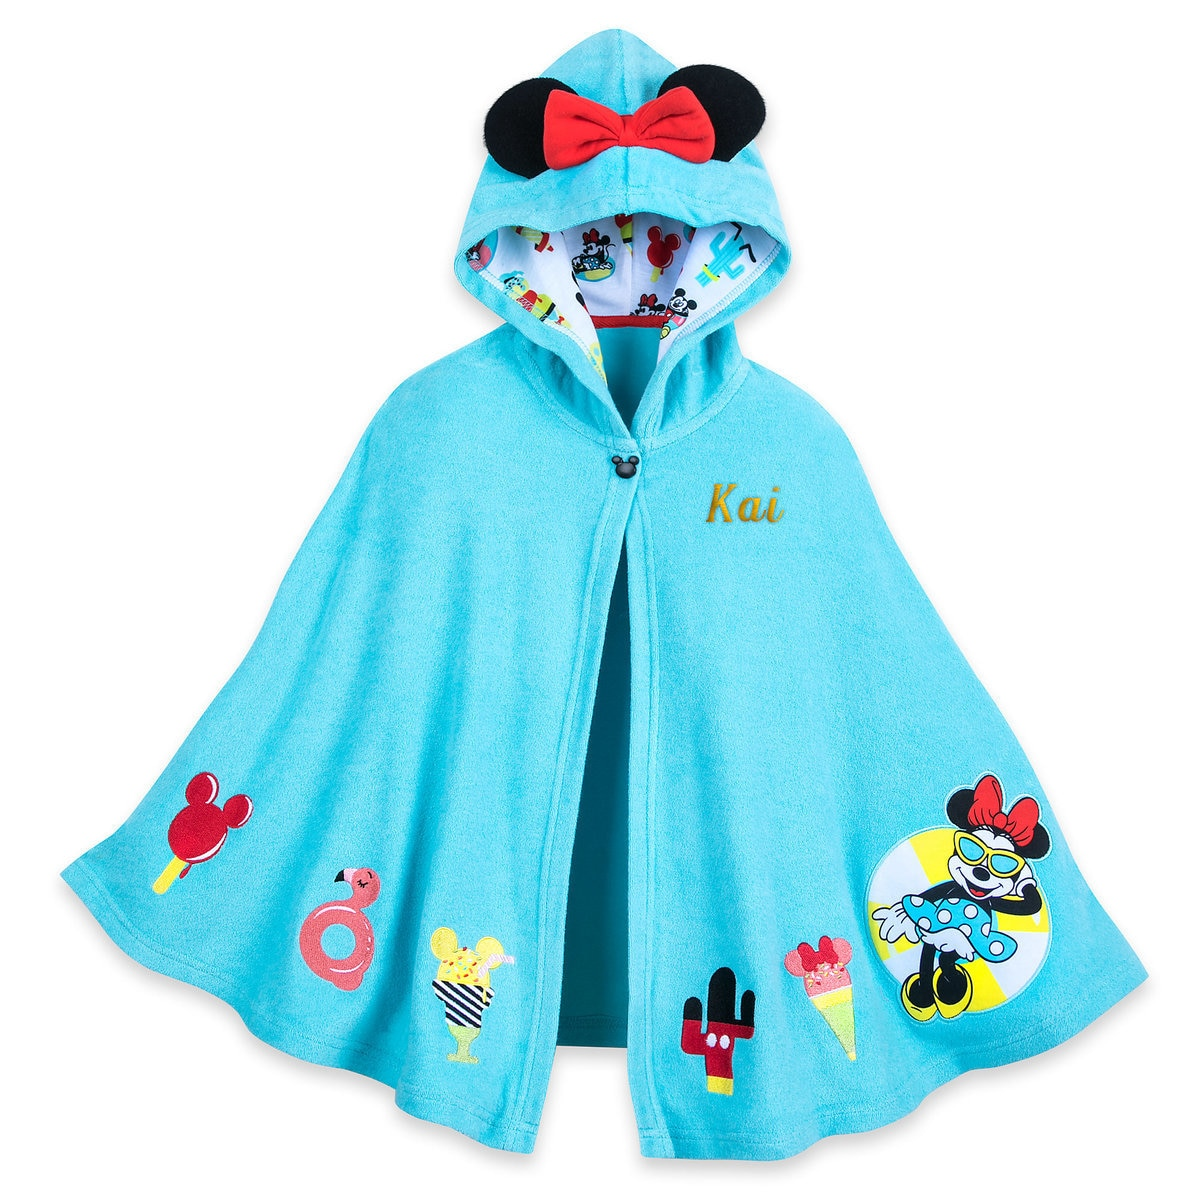 0b2f6228 Product Image of Minnie Mouse Summer Fun Swim Cover-Up for Girls -  Personalized #